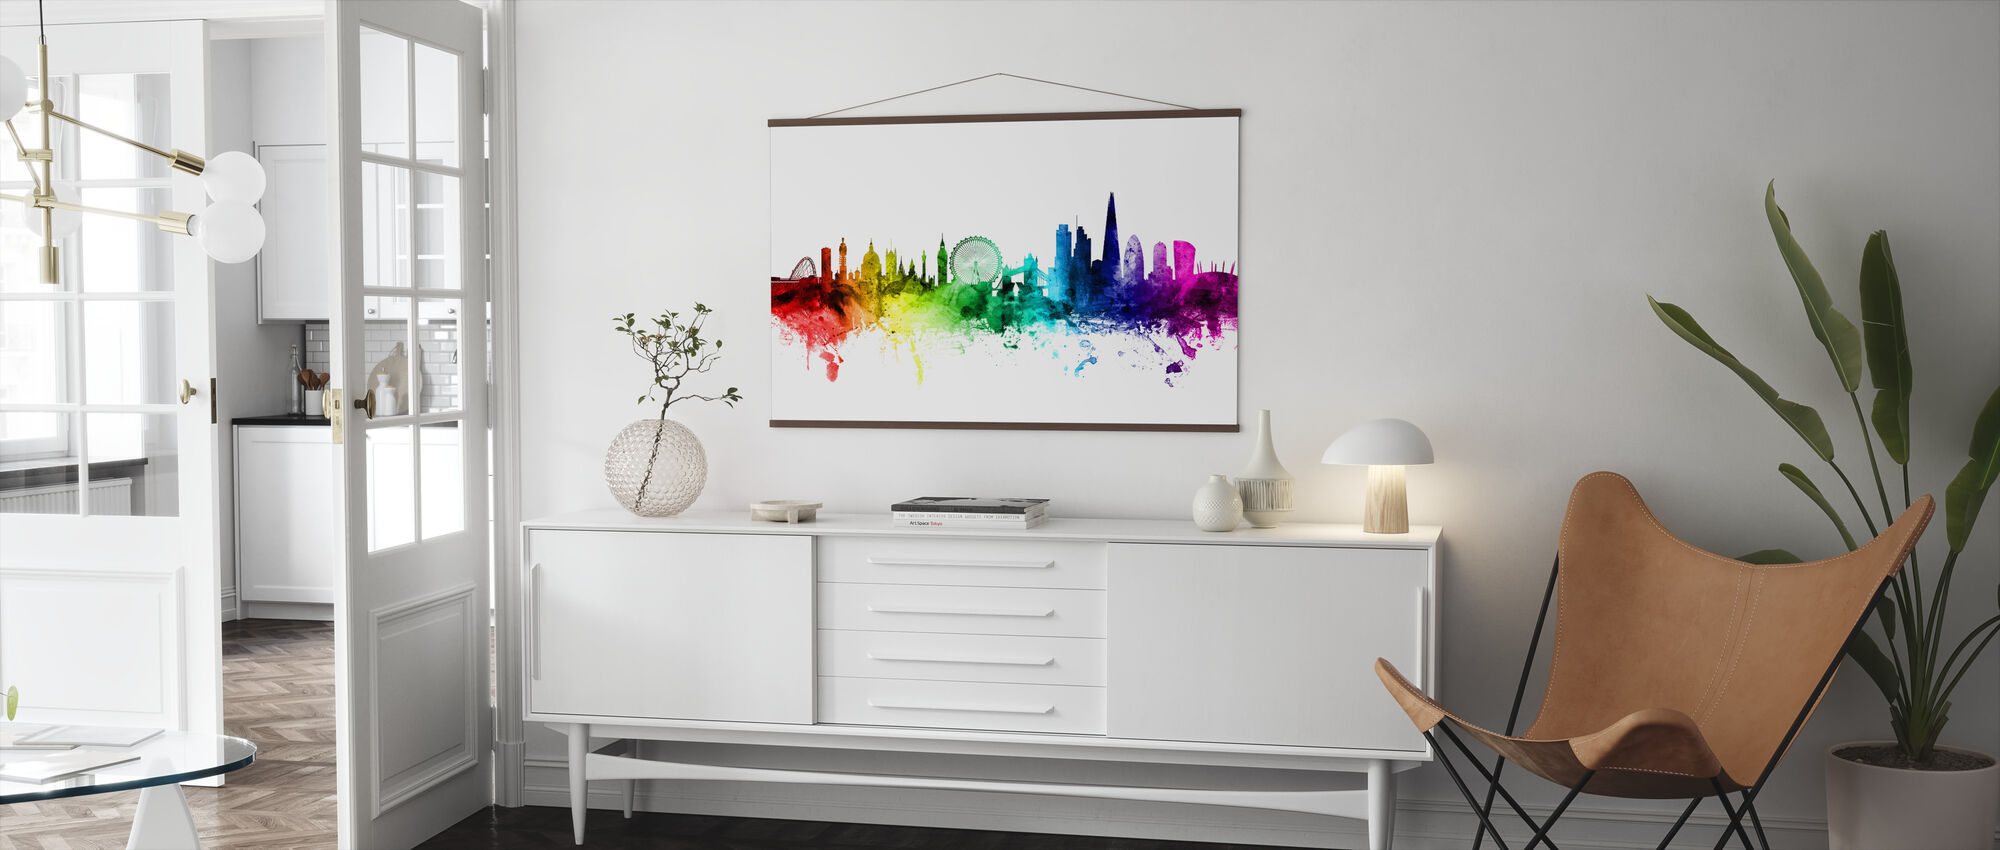 London Skyline Rainbow - Poster - Living Room